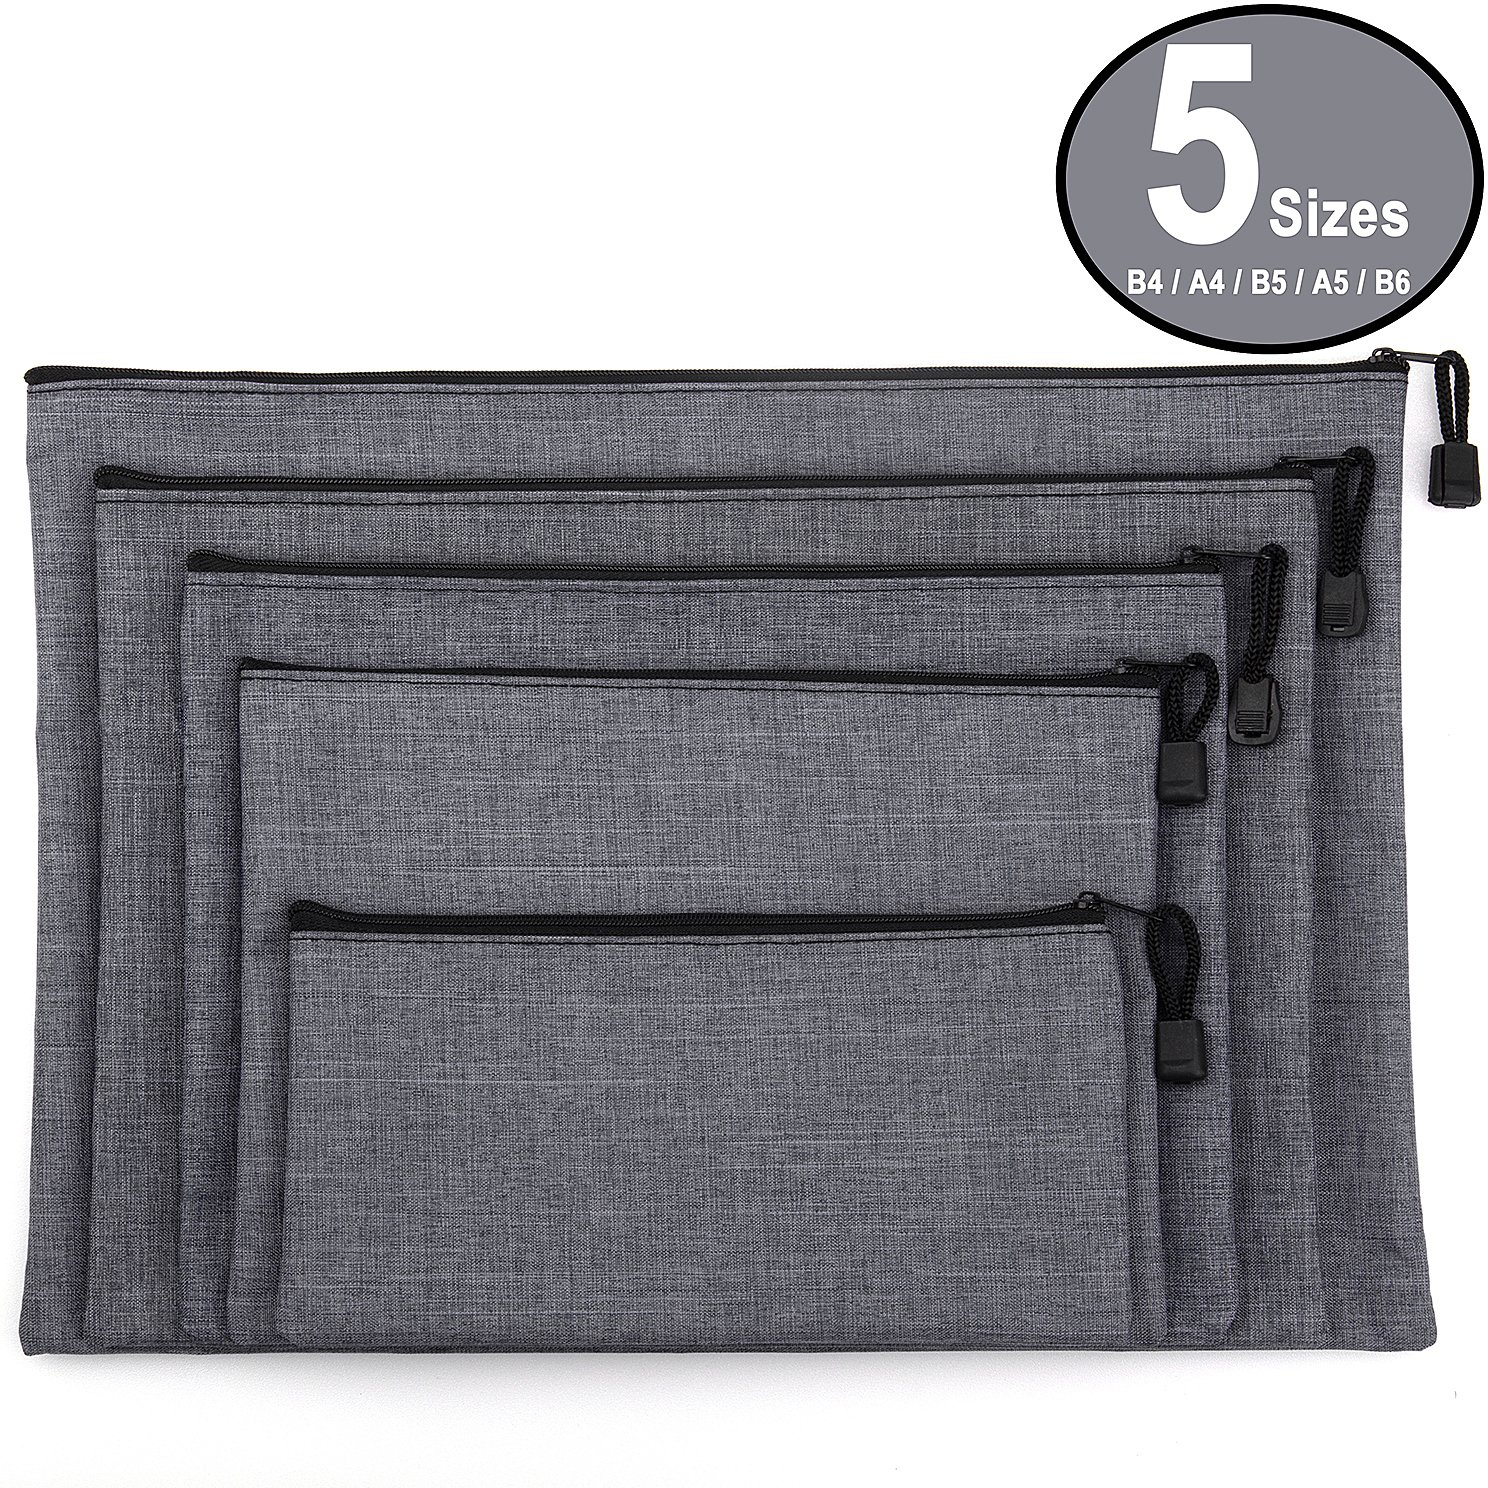 ADVcer 5 Pack Canvas Zipper Tool Bag Set 5 Sizes B4 A4 B5 A5 B6 Heavy Duty Waterproof Multipurpose Utility Multi Tool Storage Pouch Case for Organizing Sorting Household Tools Spare Parts Gray